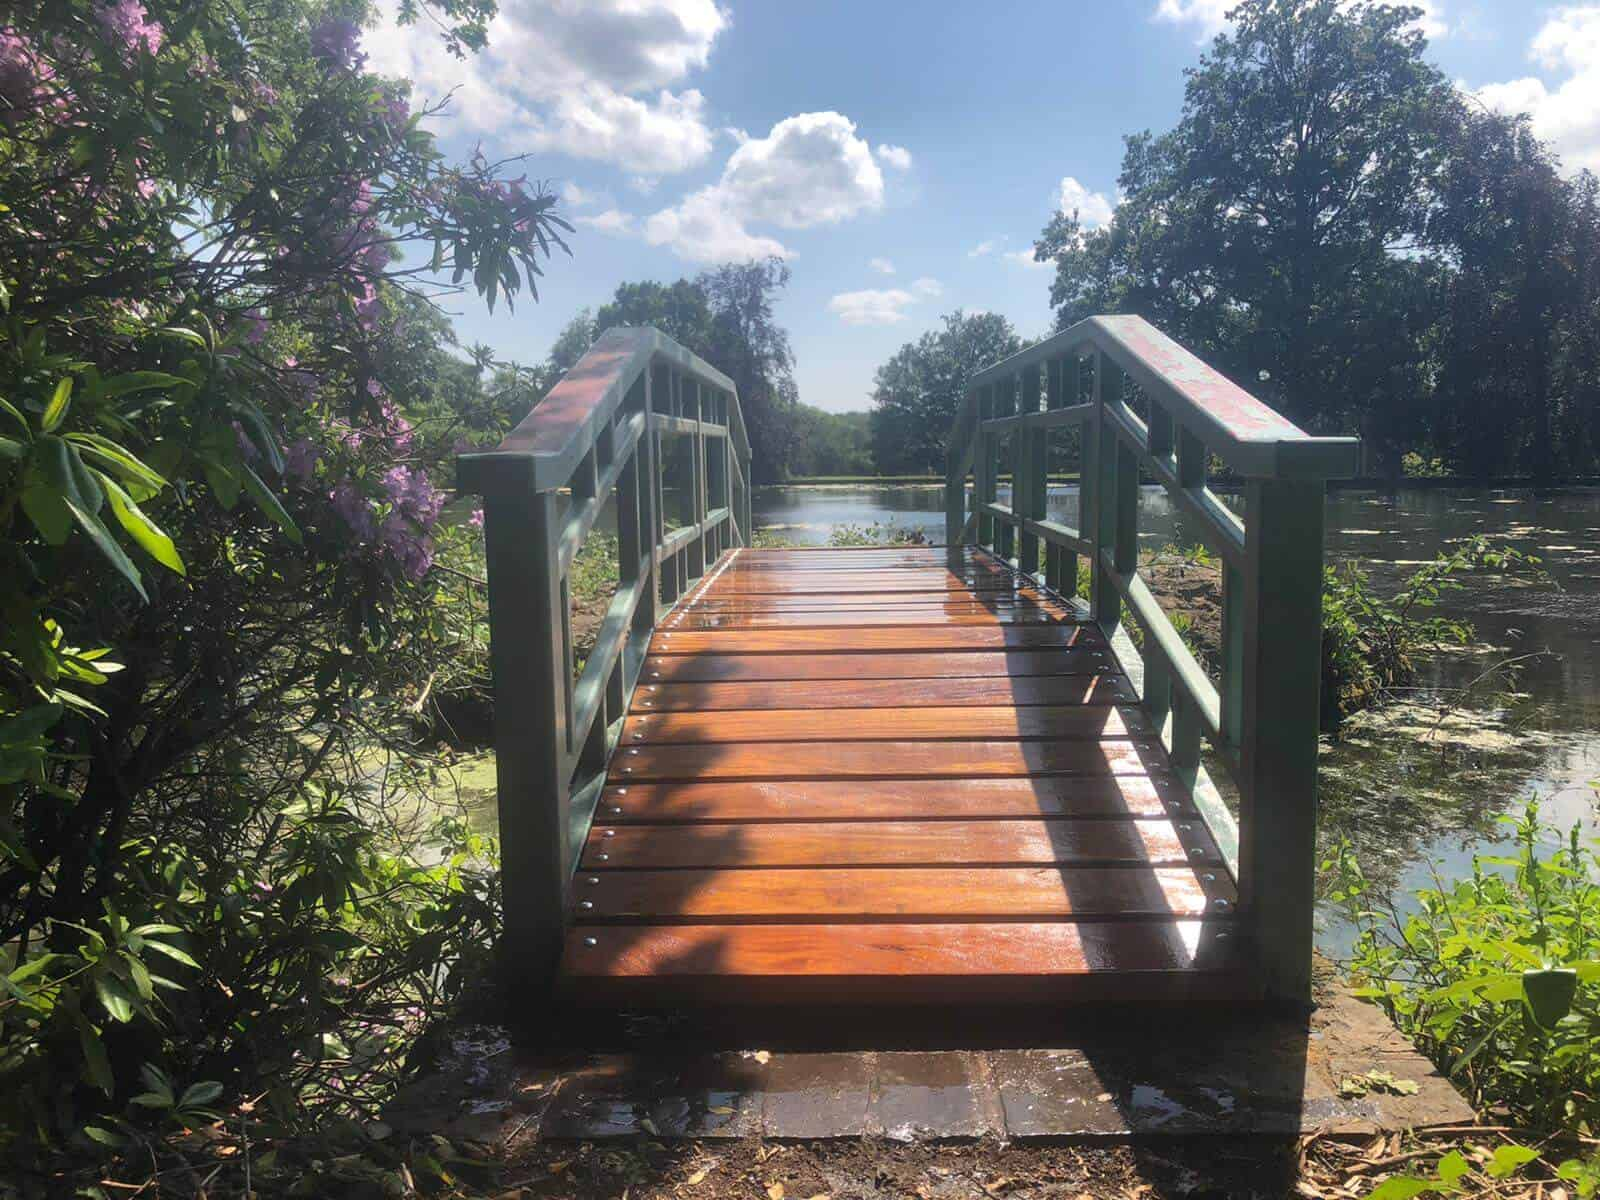 Bridge repaired with wooden decking planks